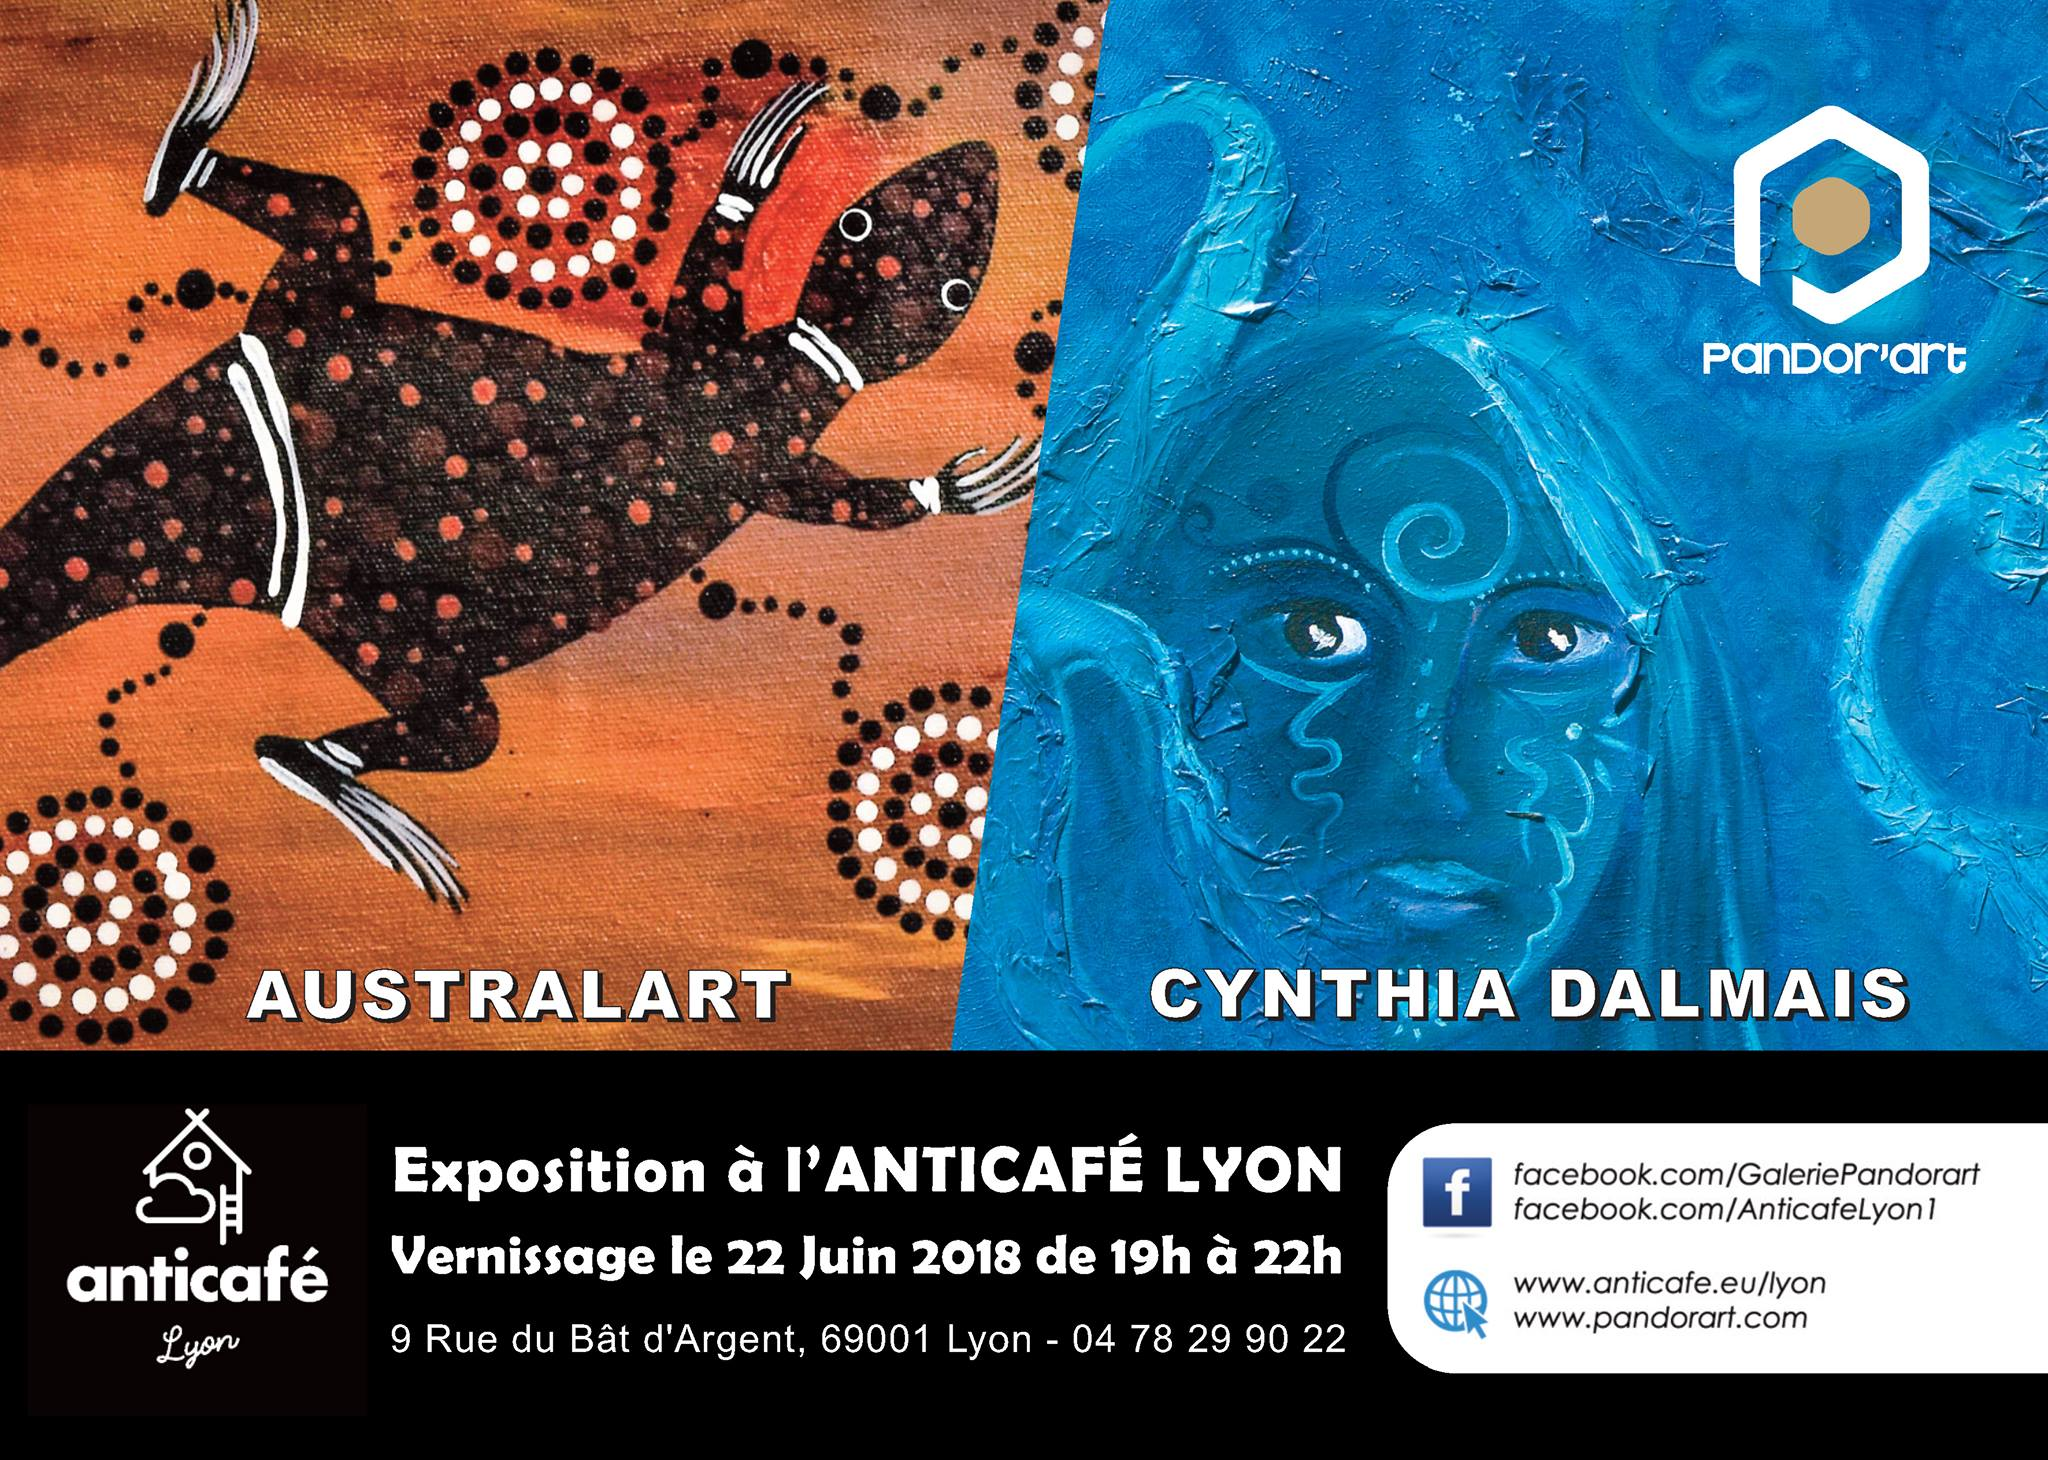 anticafe 22 juin exposition